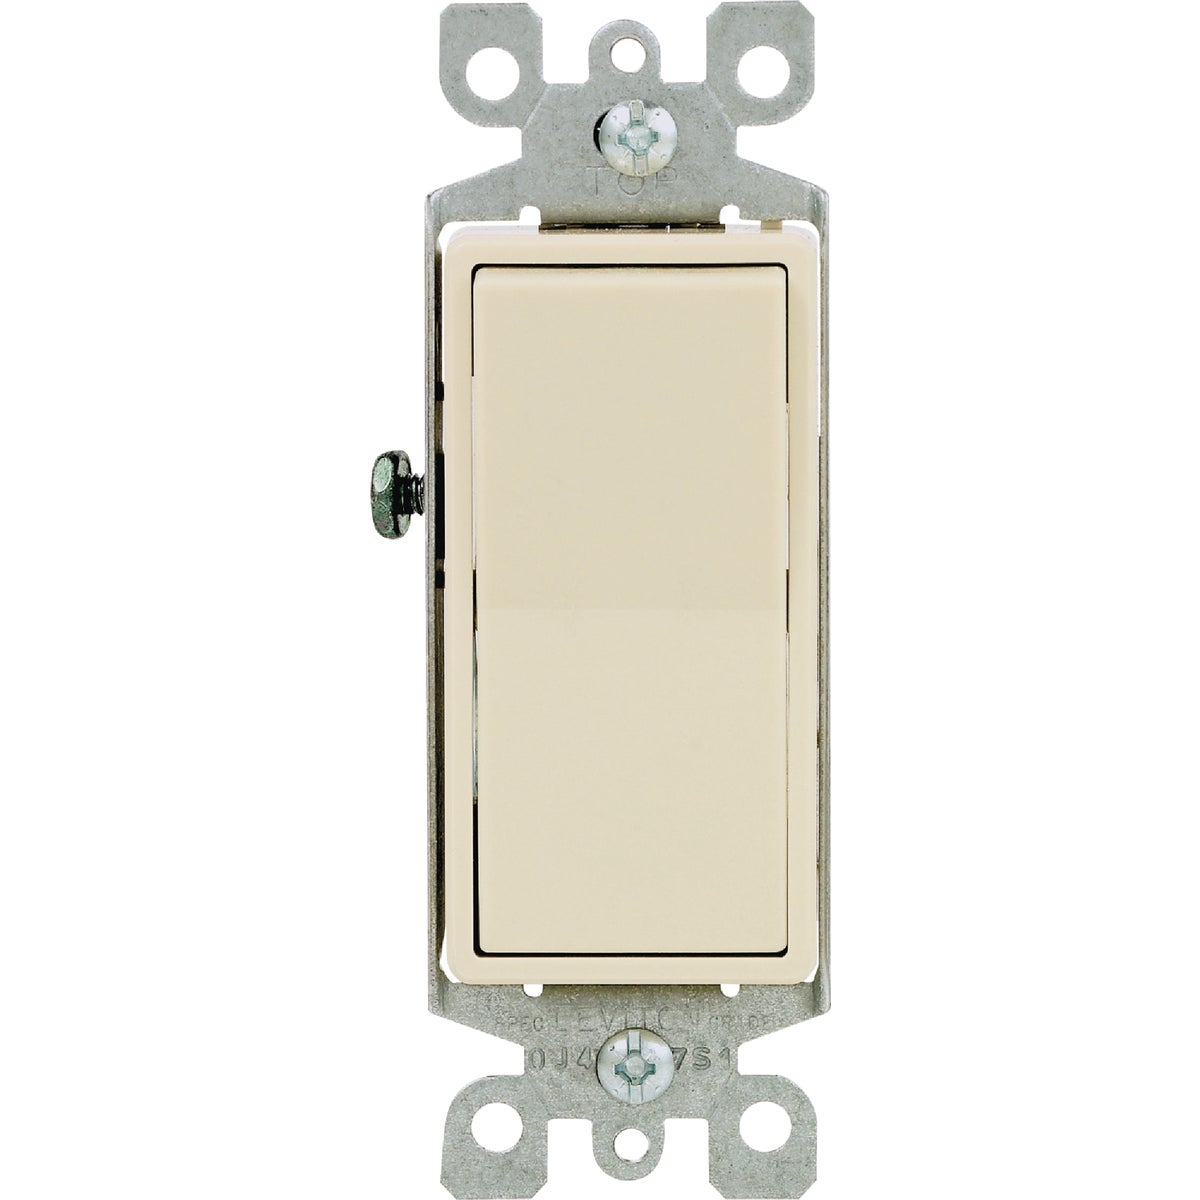 IV SGL POLE GRND SWITCH - S11-5601-2IS by Leviton Mfg Co